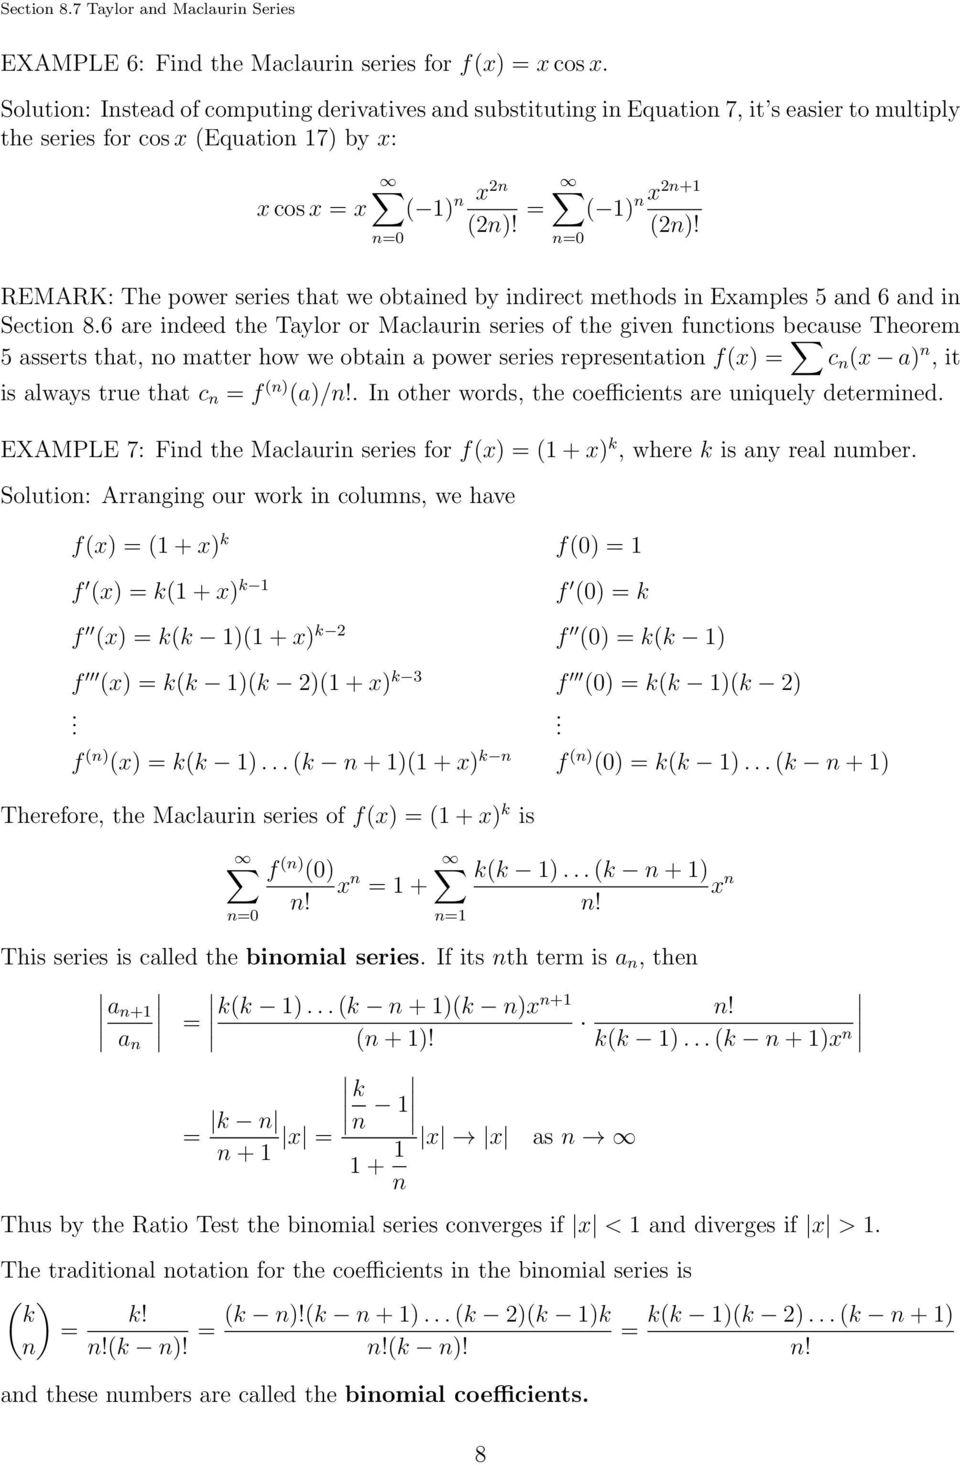 REMARK: The power series that we obtained by indirect methods in Examples 5 and 6 and in Section 8.